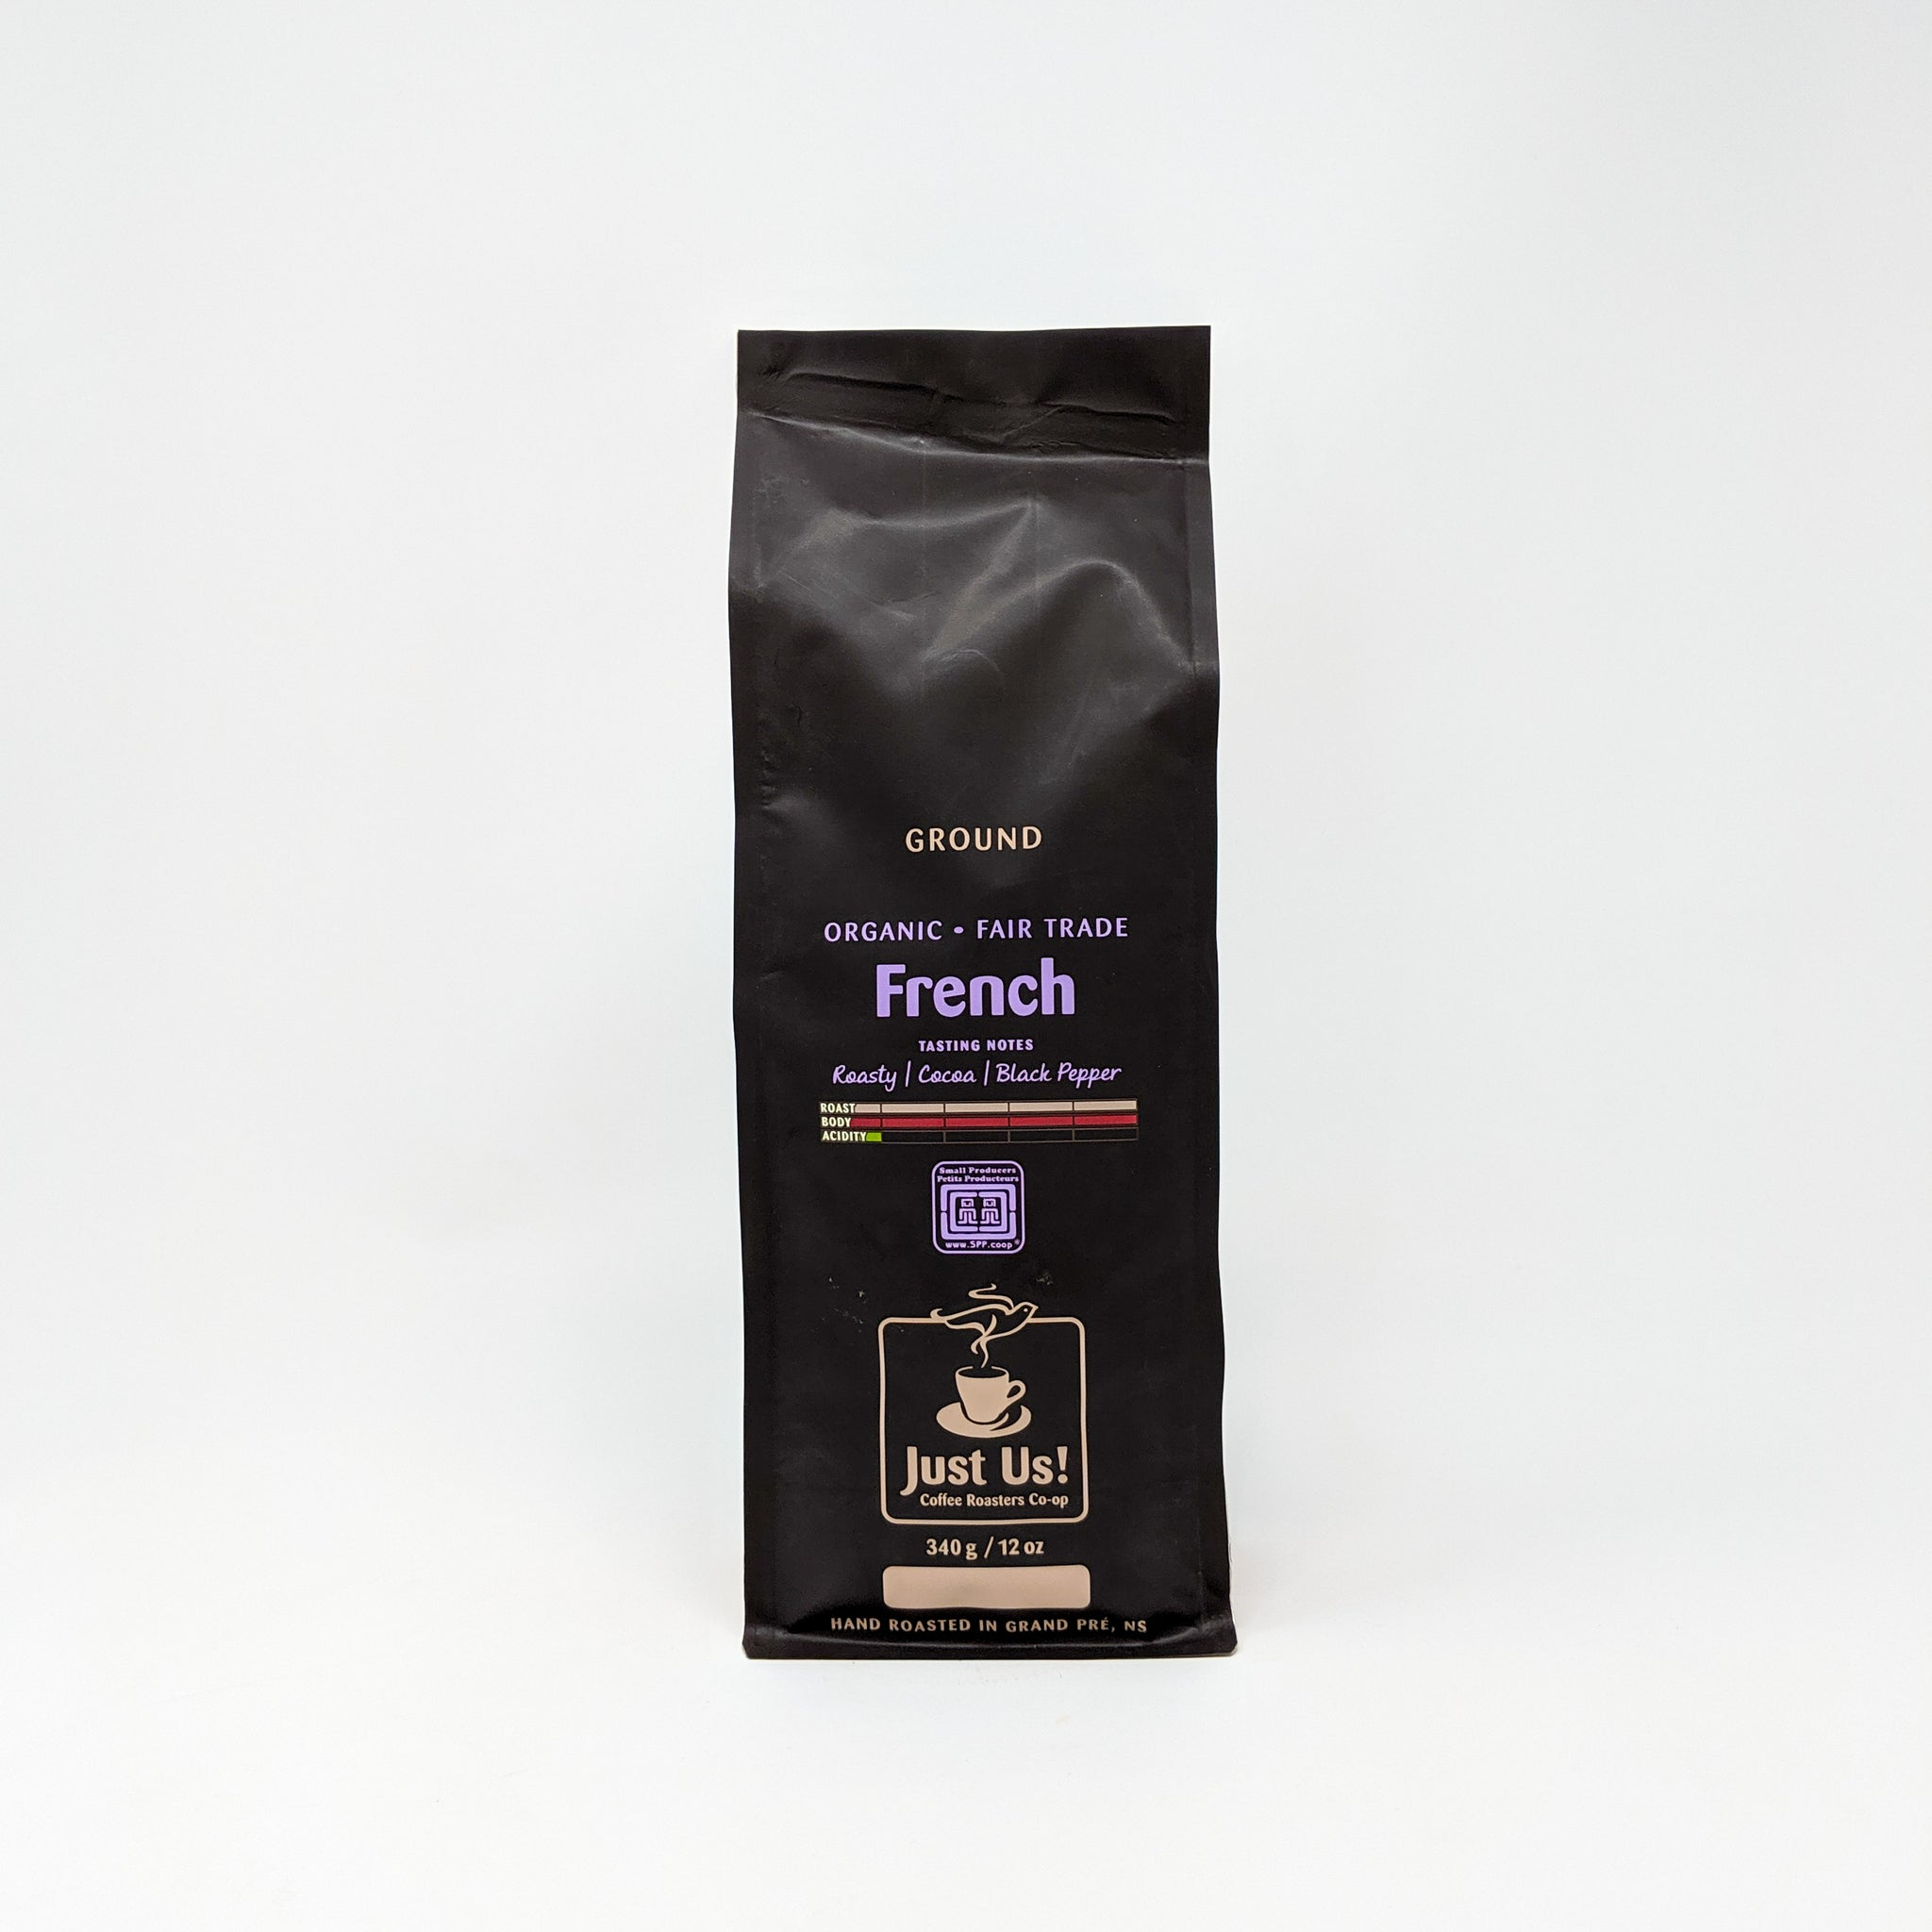 French Roast Coffee - Organic & Fair Trade - Just Us!